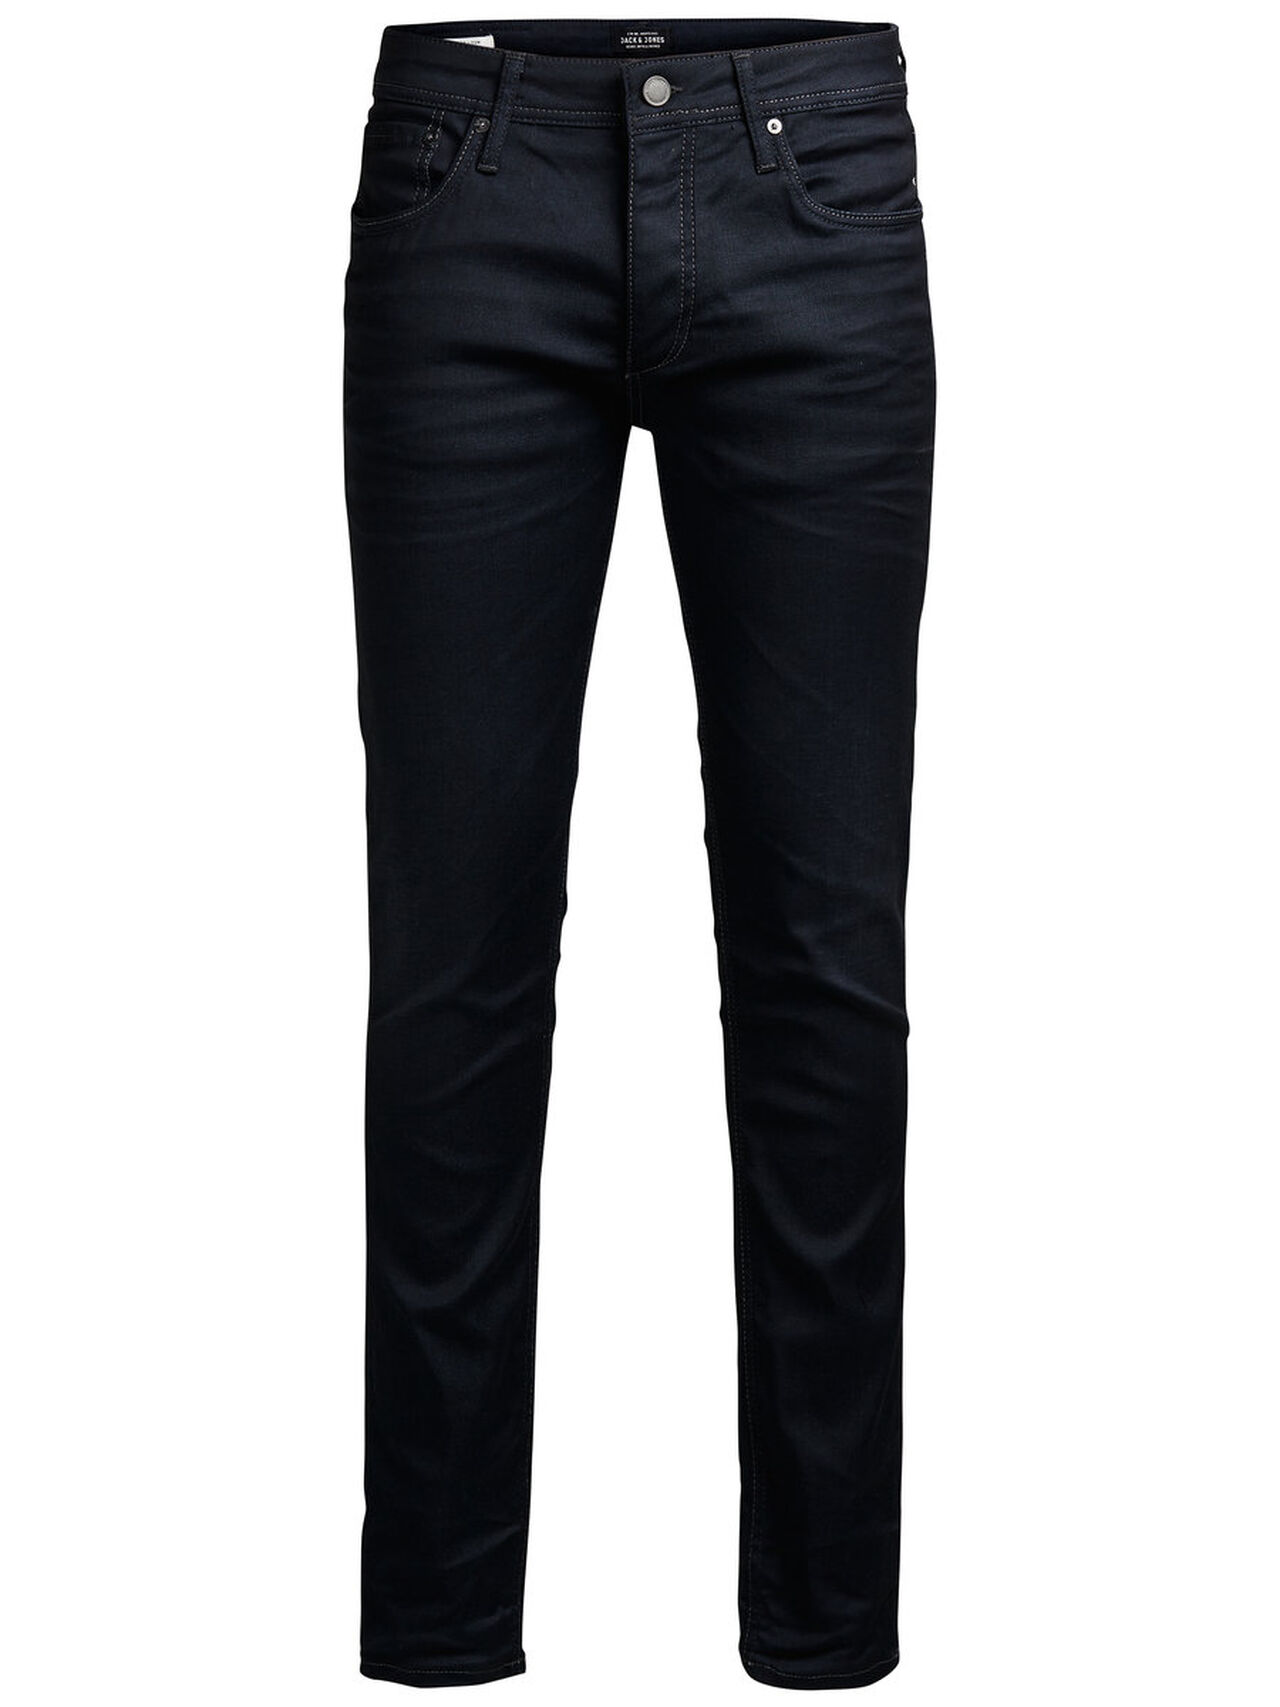 JACK & JONES Tim Original 720 Slim Fit Jeans Men Blue